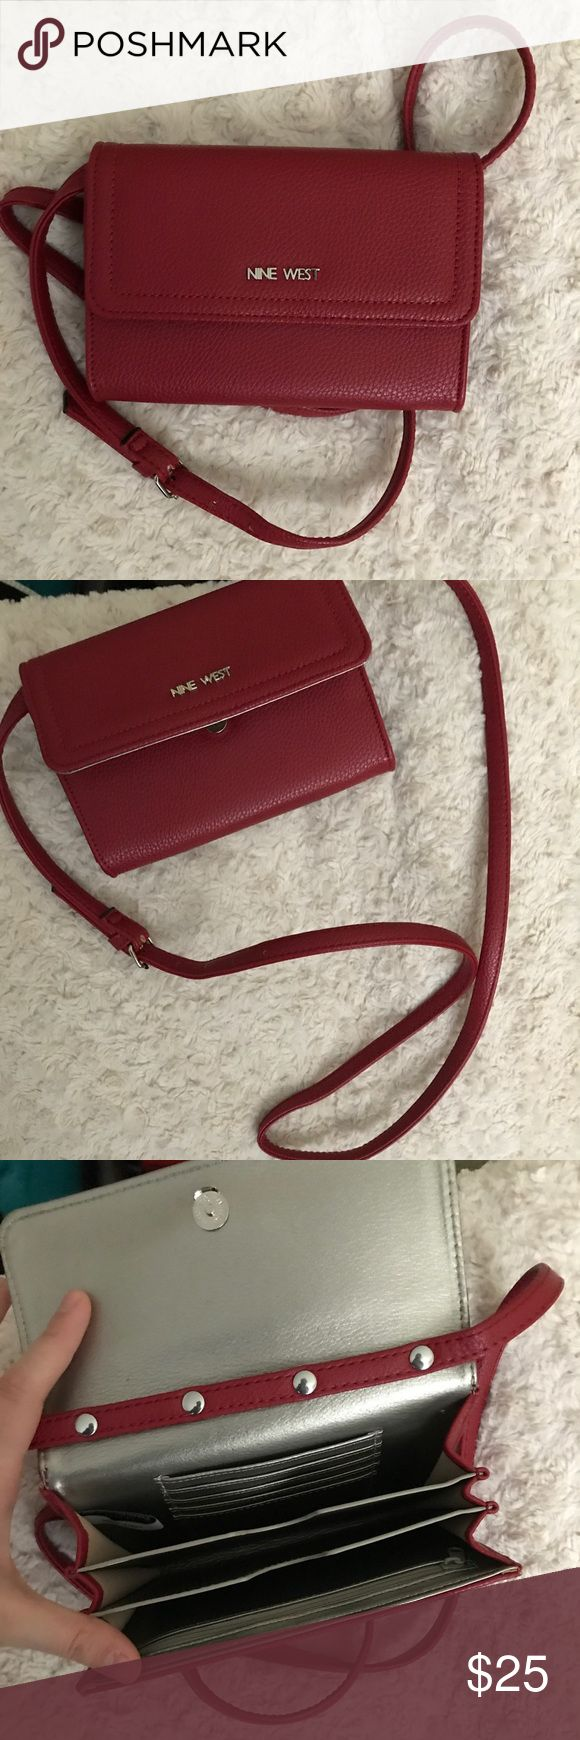 NINE WEST CROSS BODY SATCHEL WITH ADJUSTABLE STRAP This Nine West cross body satchel in Apple red is GREAT for when you only need to carry a few items! Fits an iPhone 7- would fit an iPhone 7+- can also fit a change purse/small wallet, and beauty items! Beautiful red leather!! Nine West Bags Satchels